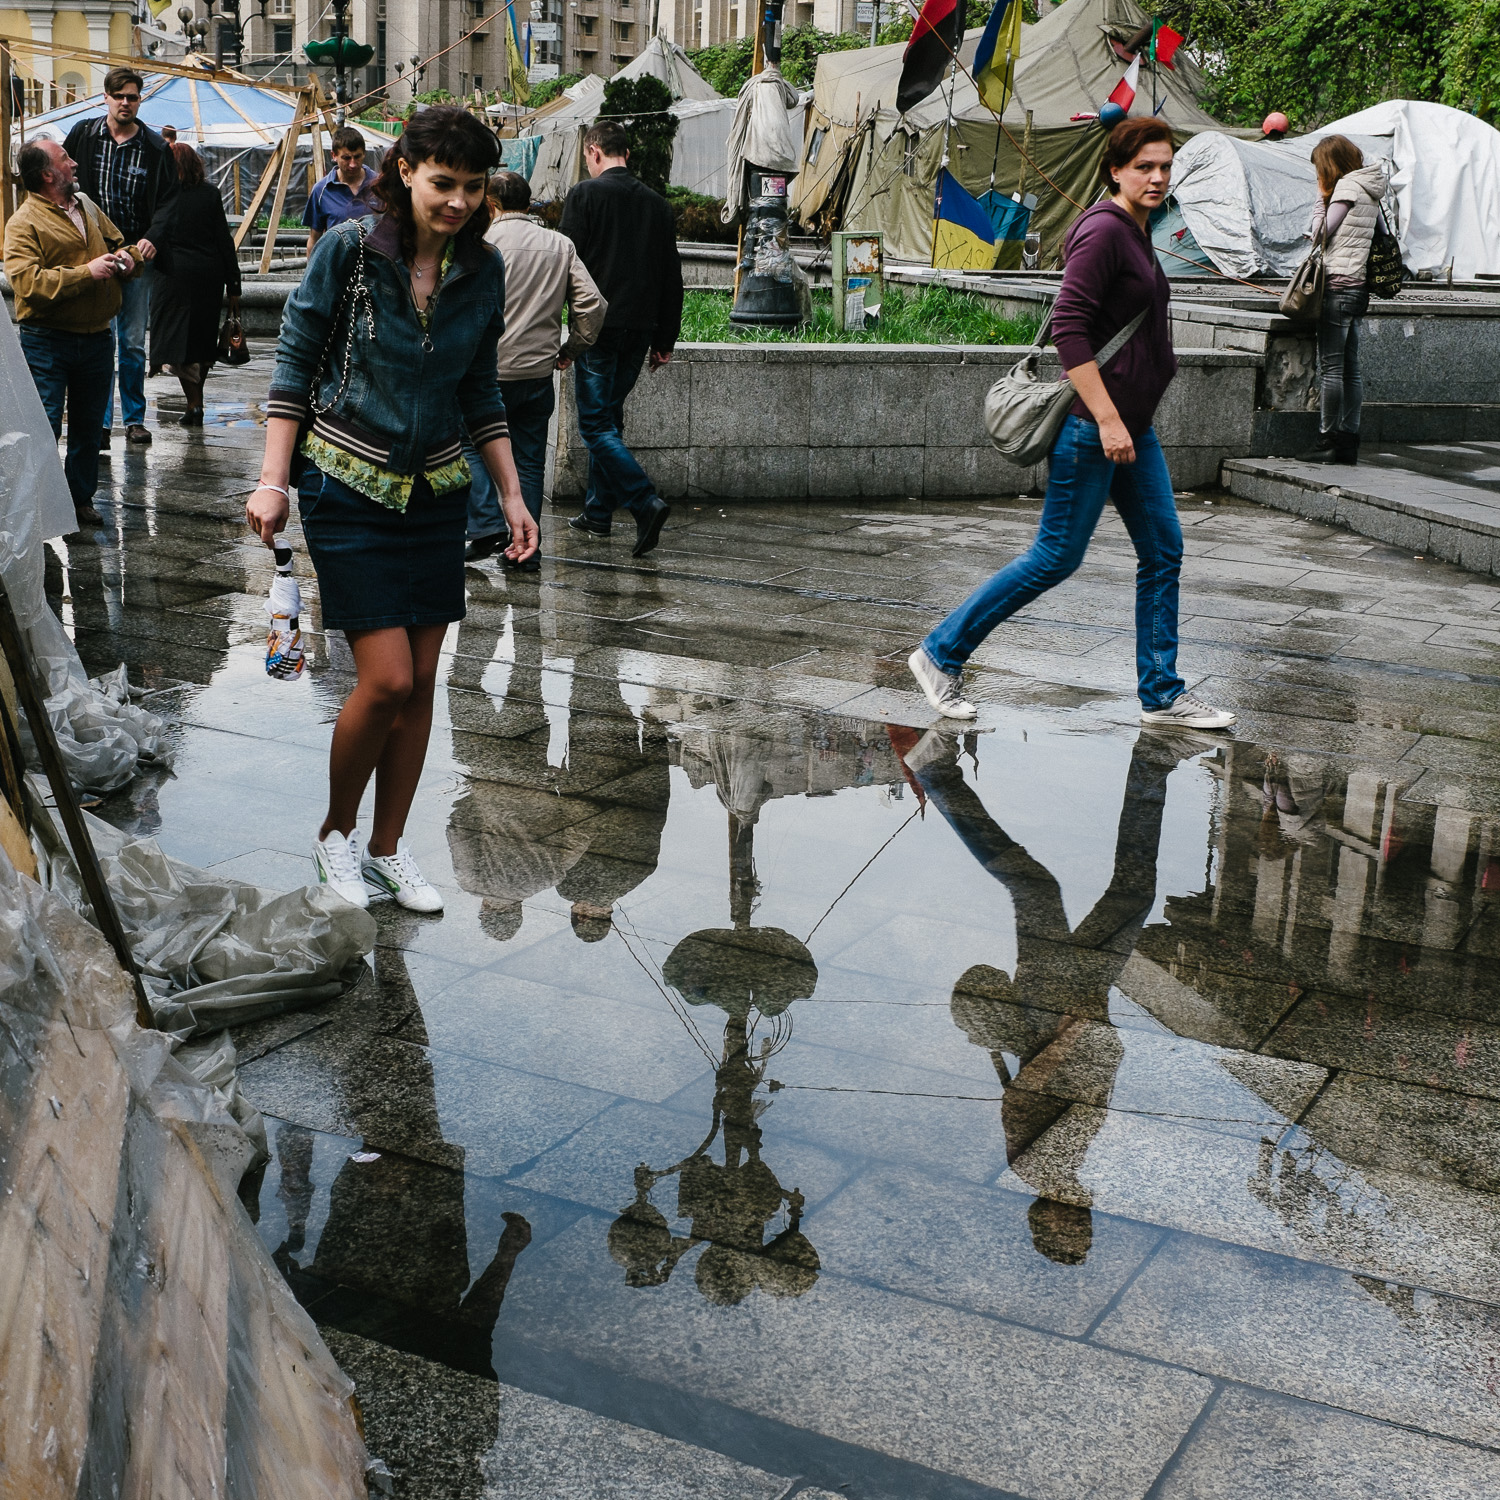 People step around puddles of water after a rain shower on Kiev's Independence Square, April 2014.